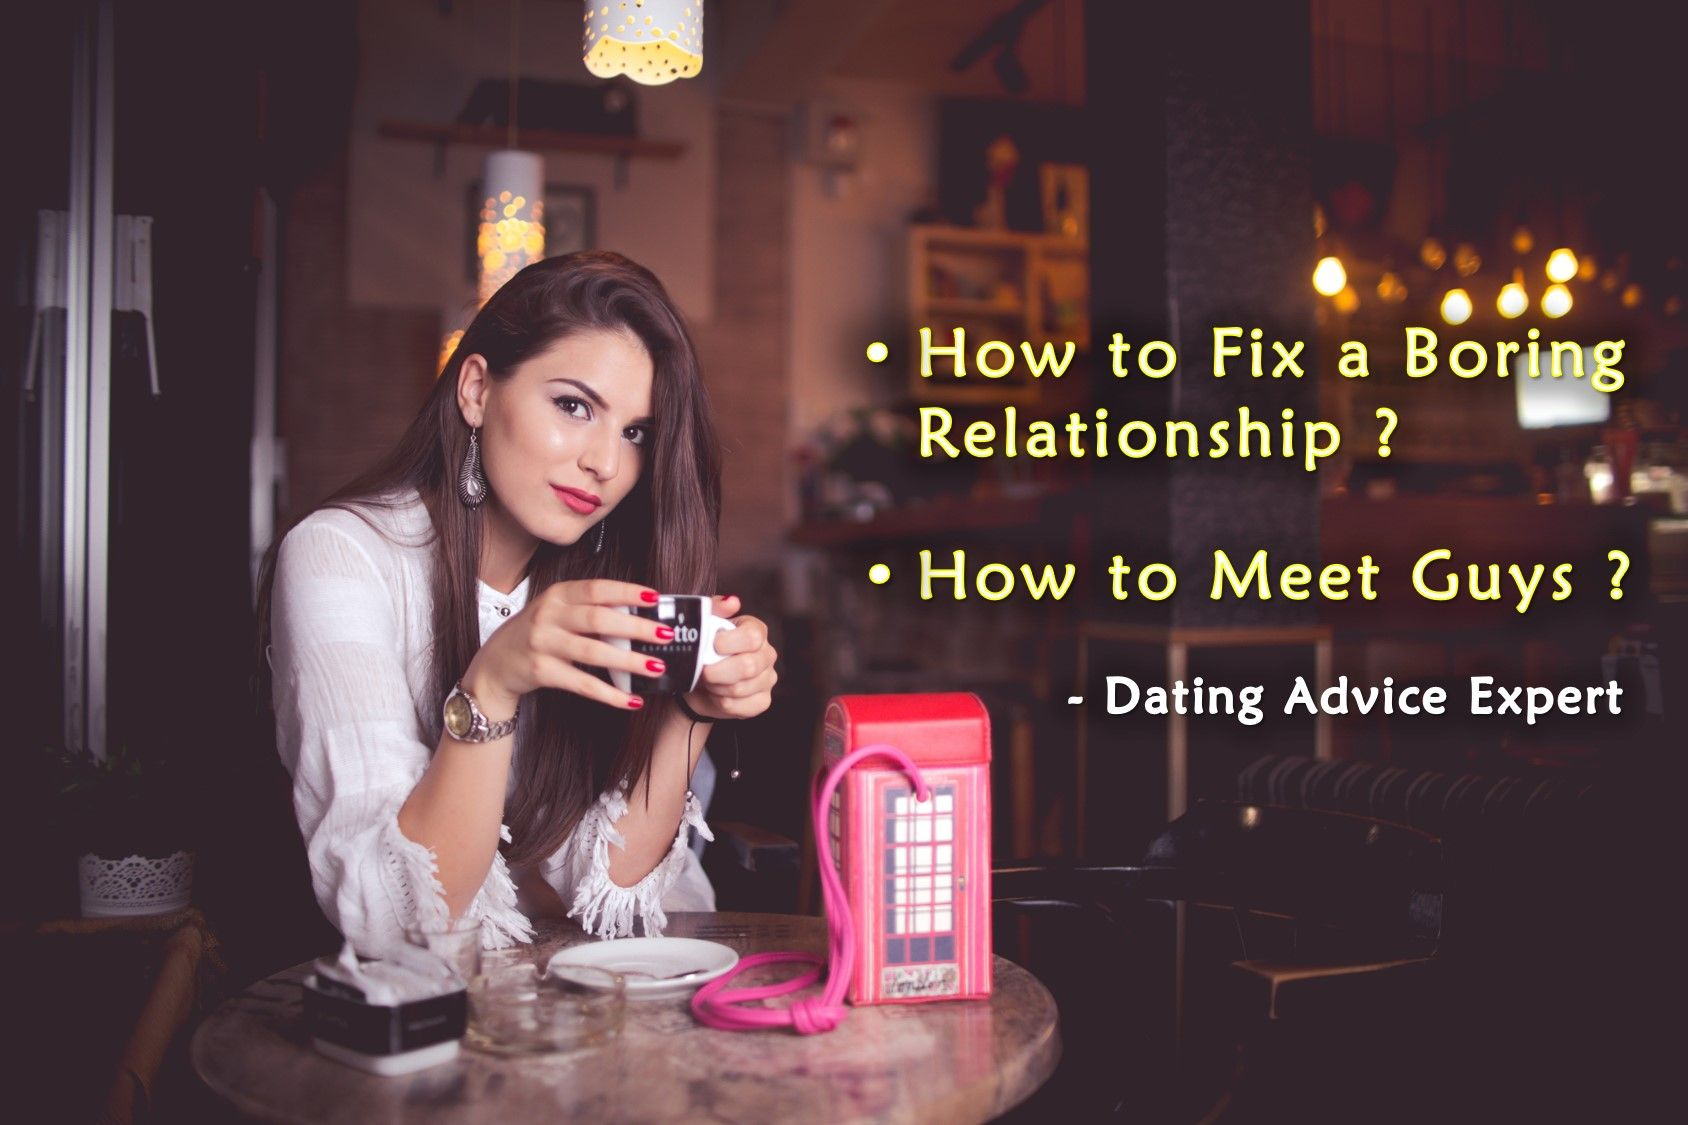 How frequentlydo girls check dating apps